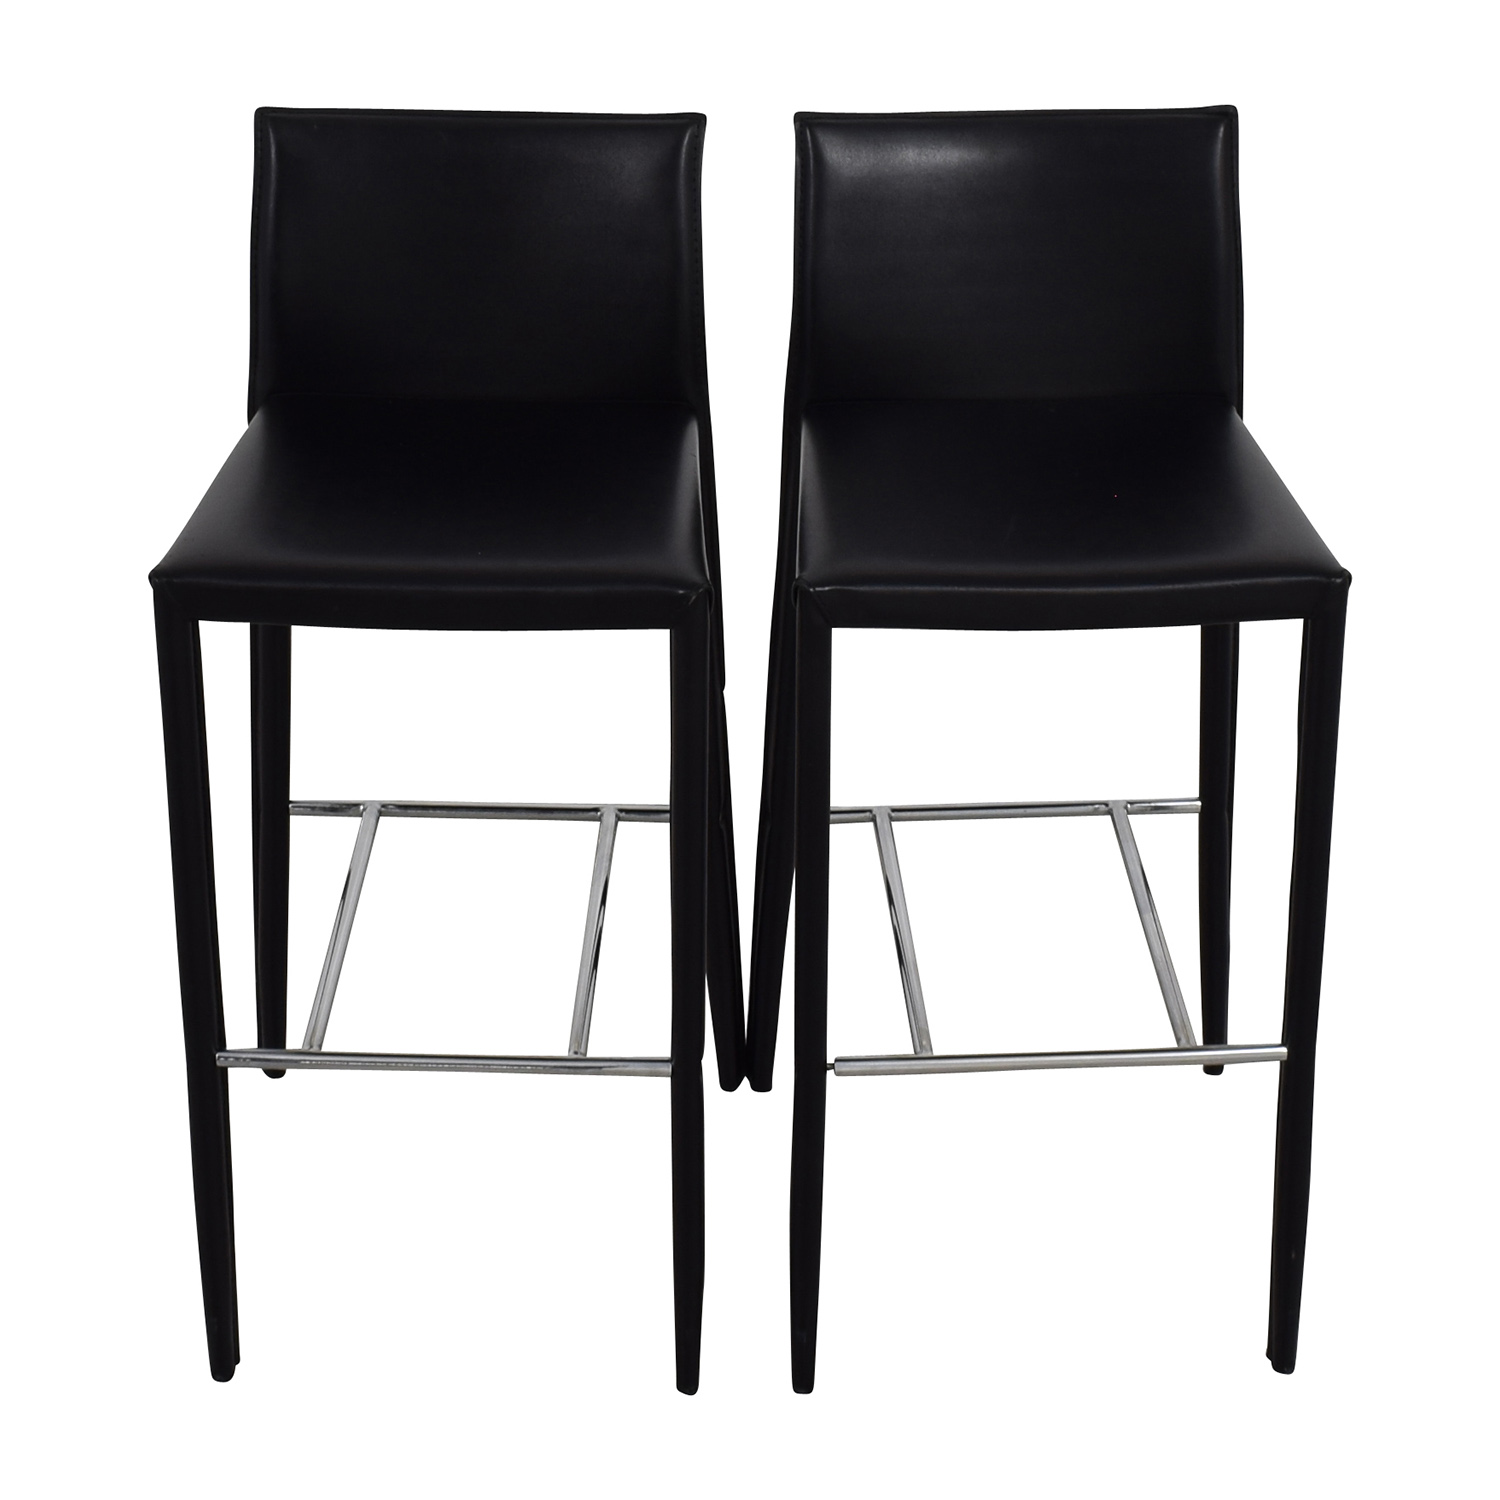 Stupendous 78 Off Black Leather Bar Stools Chairs Ncnpc Chair Design For Home Ncnpcorg